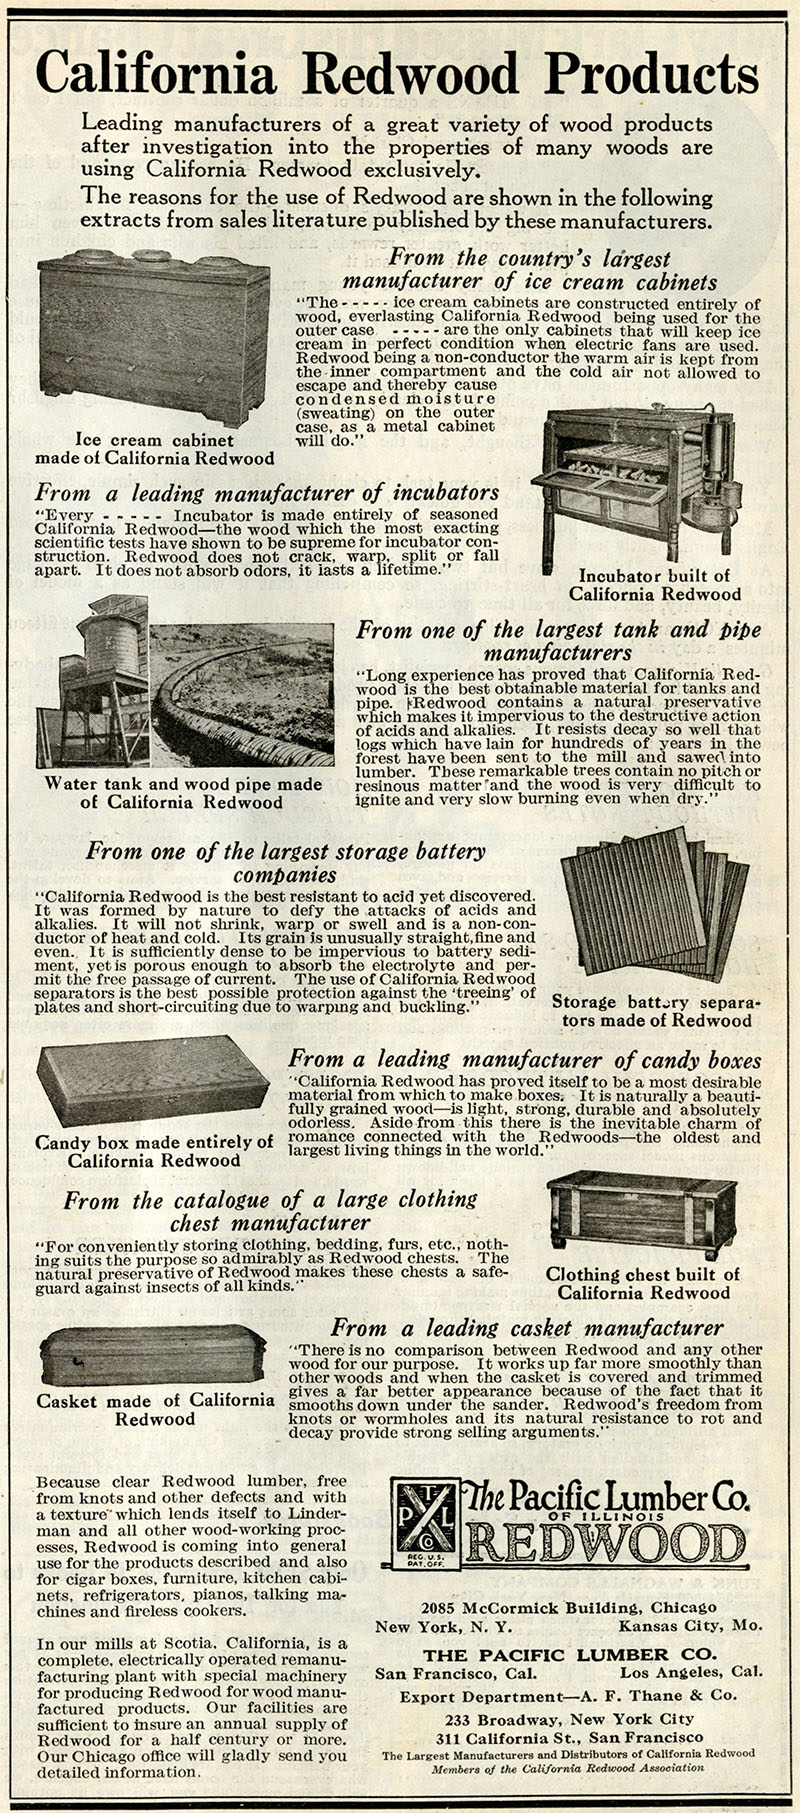 Redwood Products advertisement